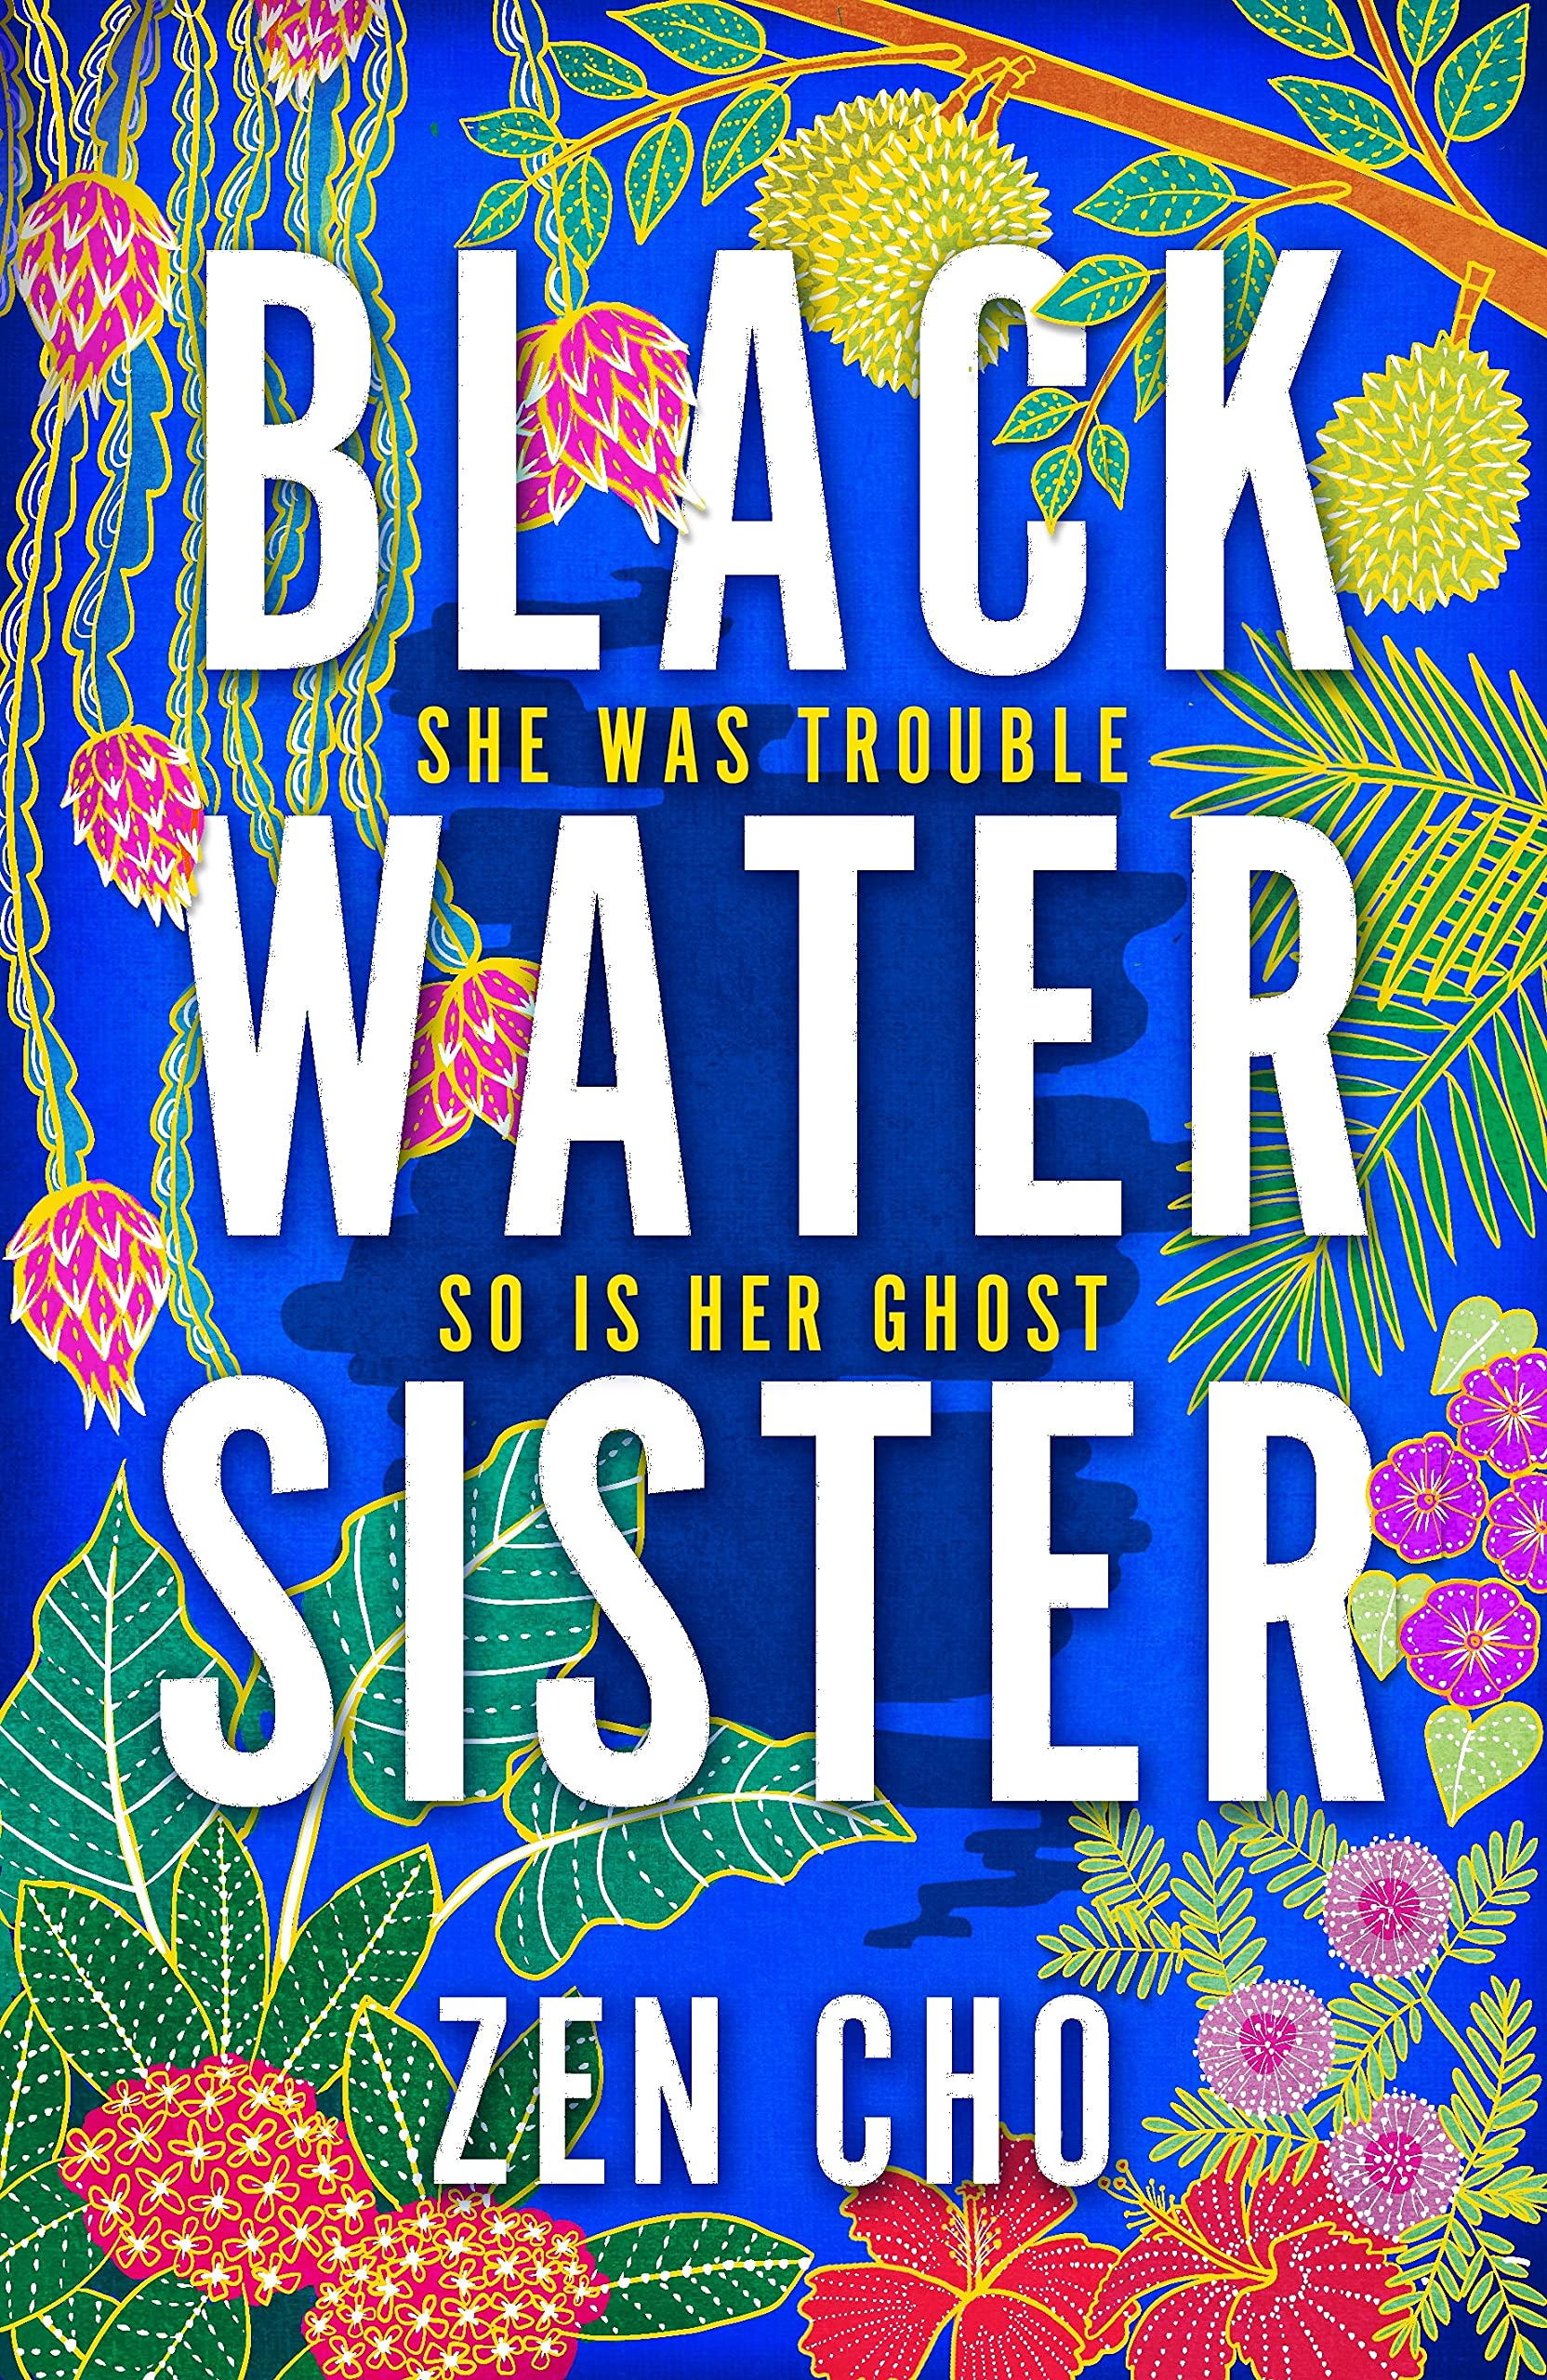 Book cover: Black Water Sister - Zen Cho (UK edition)